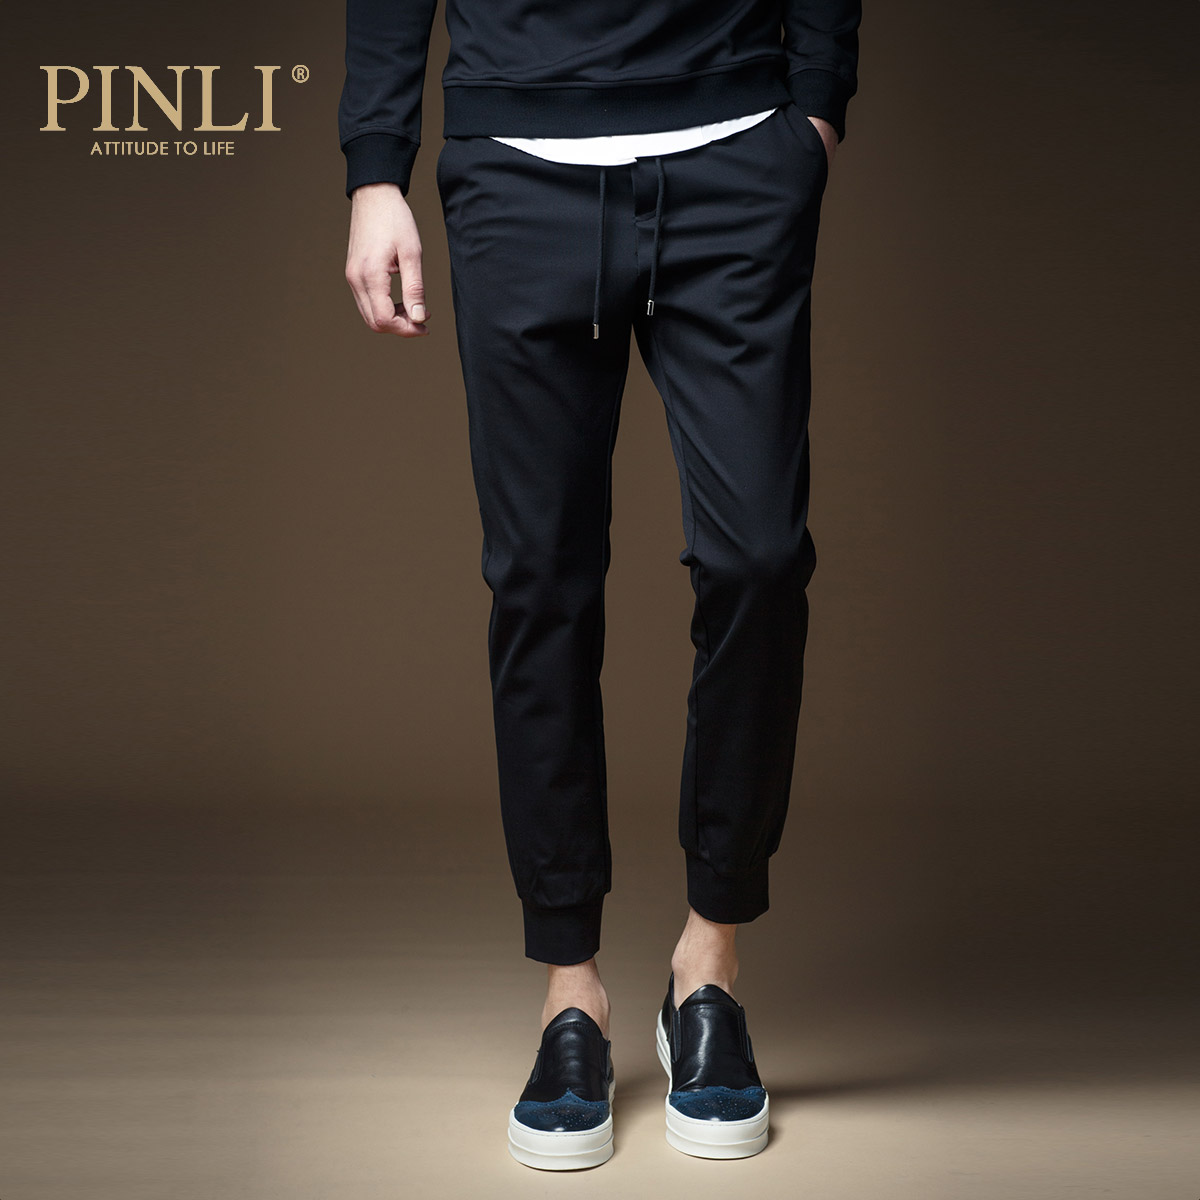 Sweatpants Pants Men Skinny Mid Military Pinli Products Are Male Body Decoration Autumn Pants Upon Casual Trousers Men's K103